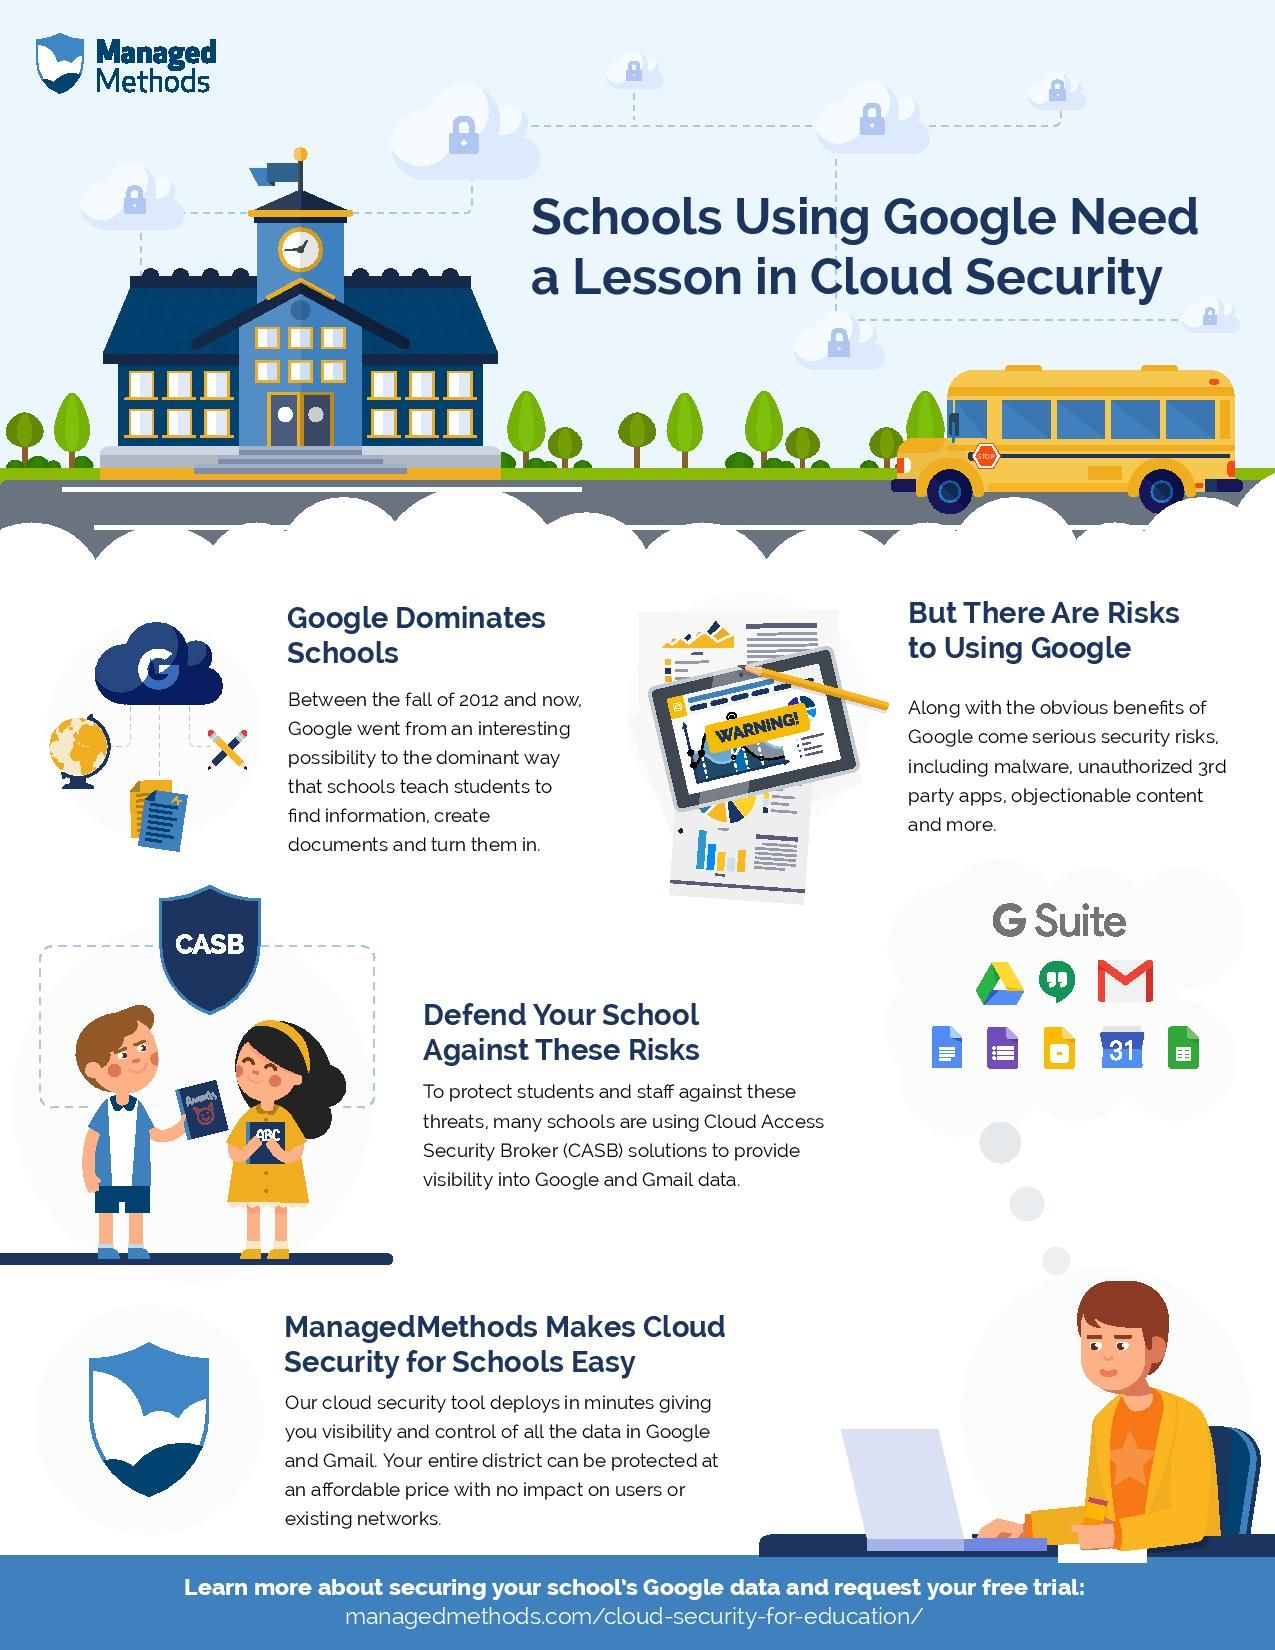 Schools Using Google Need a Lesson in Cloud Security